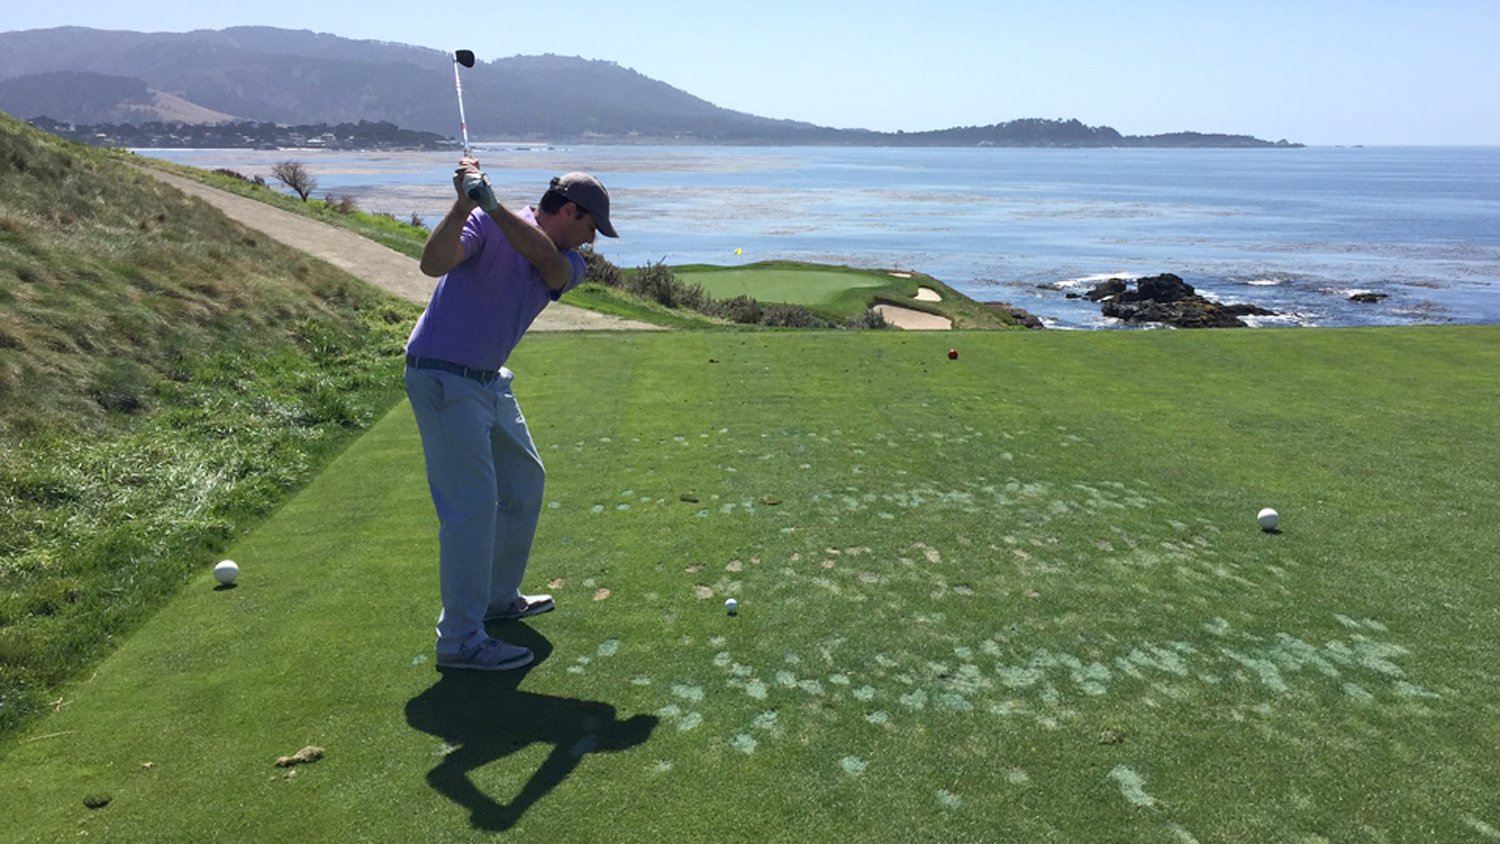 Sports Illustrated's Alan Shipnuck played in the First Tee Open at Pebble Beach, but he struggled to process the pressure of the big stage.